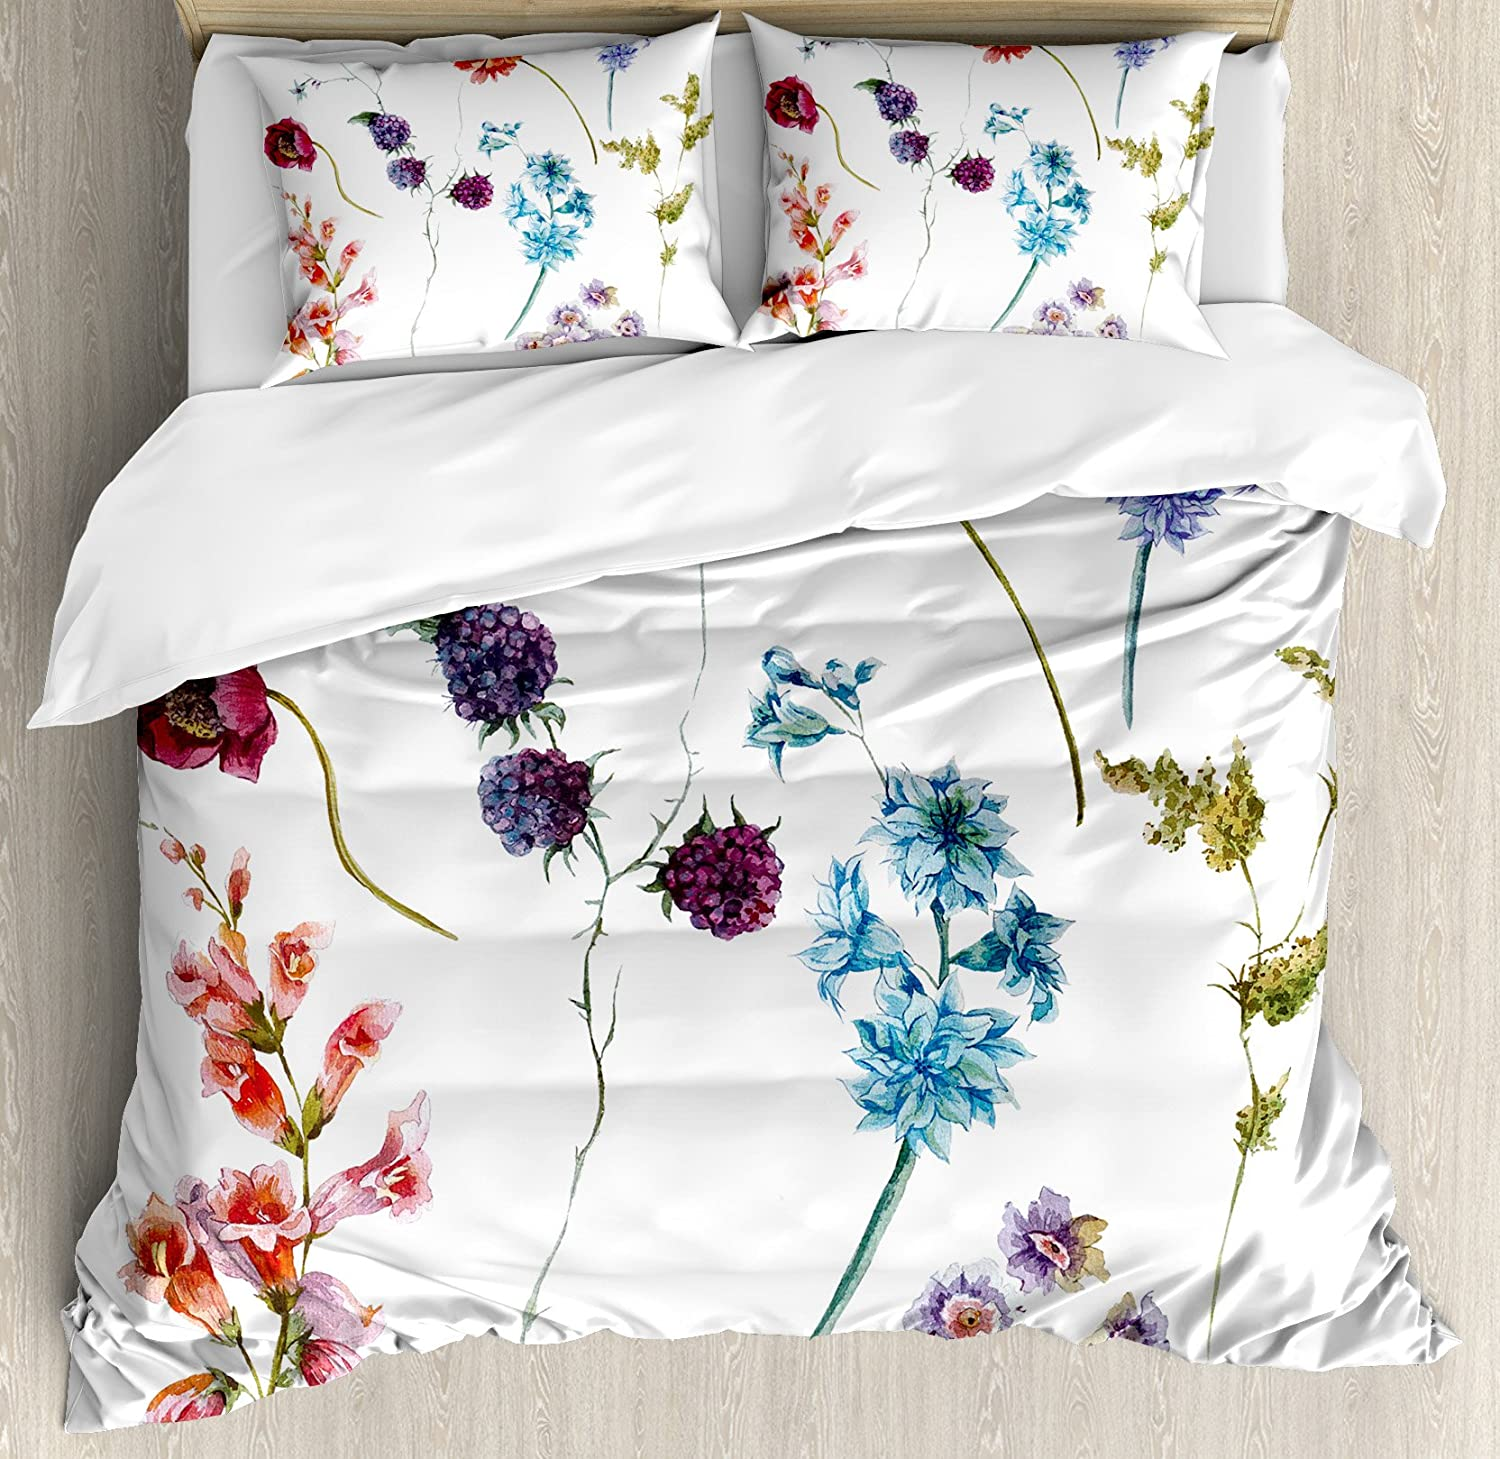 Multicolor Colorful Watercolor Wildflowers and Sprigs Flowers Botanical Garden Theme Ambesonne Watercolor Flower Duvet Cover Set King Size Decorative 3 Piece Bedding Set with 2 Pillow Shams